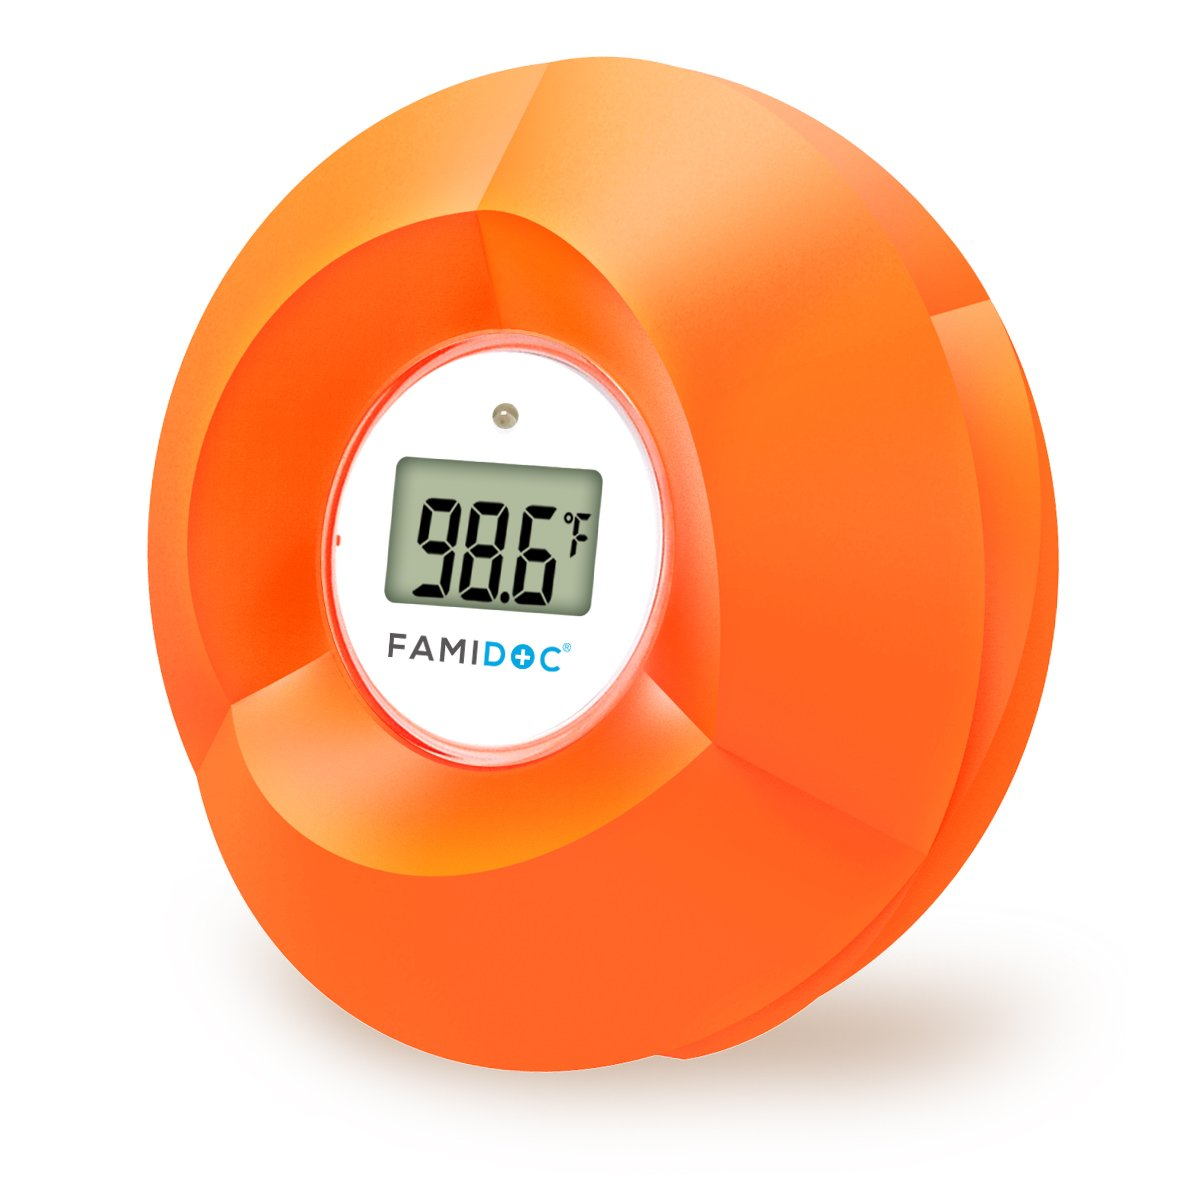 Famidoc Baby Bath Thermometer Floating Toy Bath Tub Thermometers, Flower